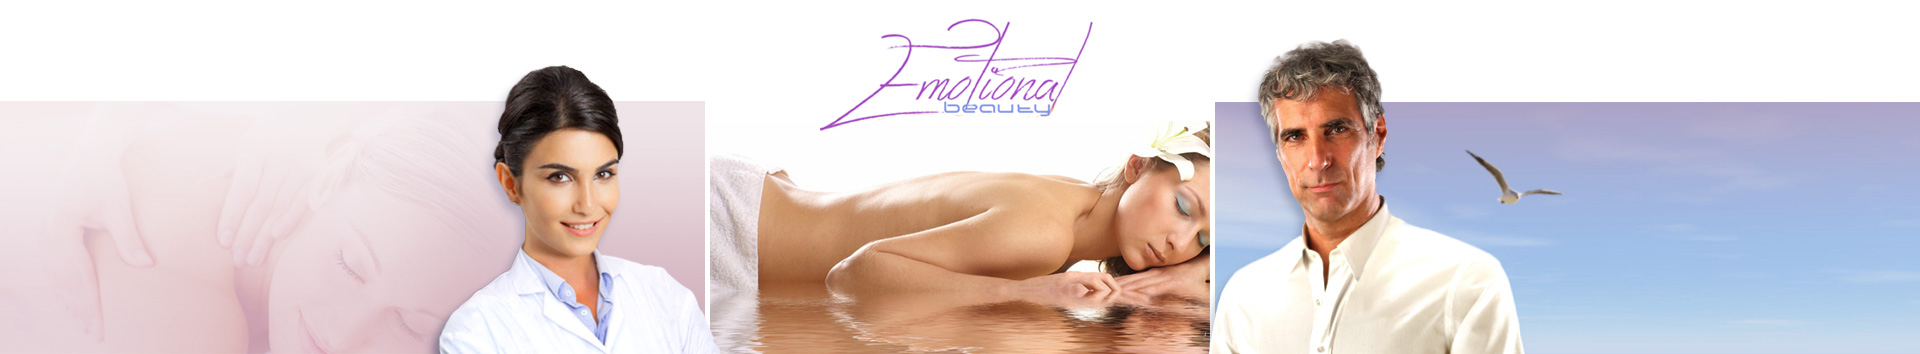 emotional beauty for Beauty Bersonal Branding beauty_personal_branding corsi_estetiste marketing_estetica